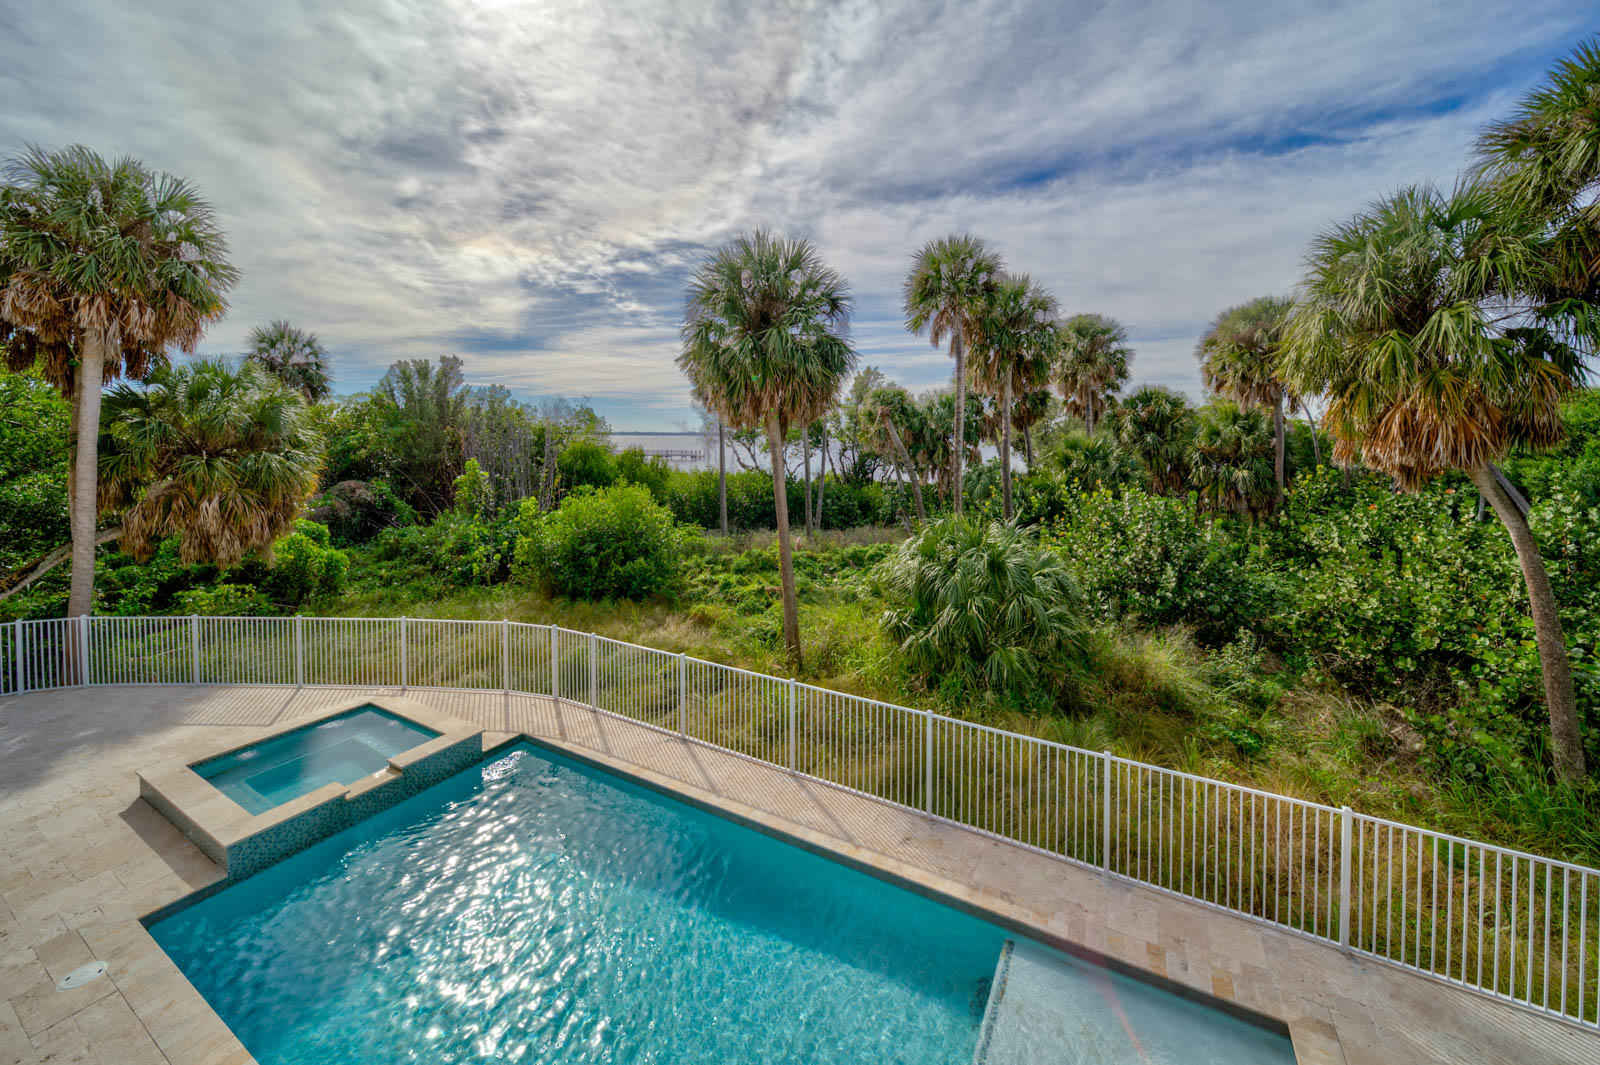 PELICAN POINTE WEST(PB 40-35) LOT 1 (OR 3765-1700)